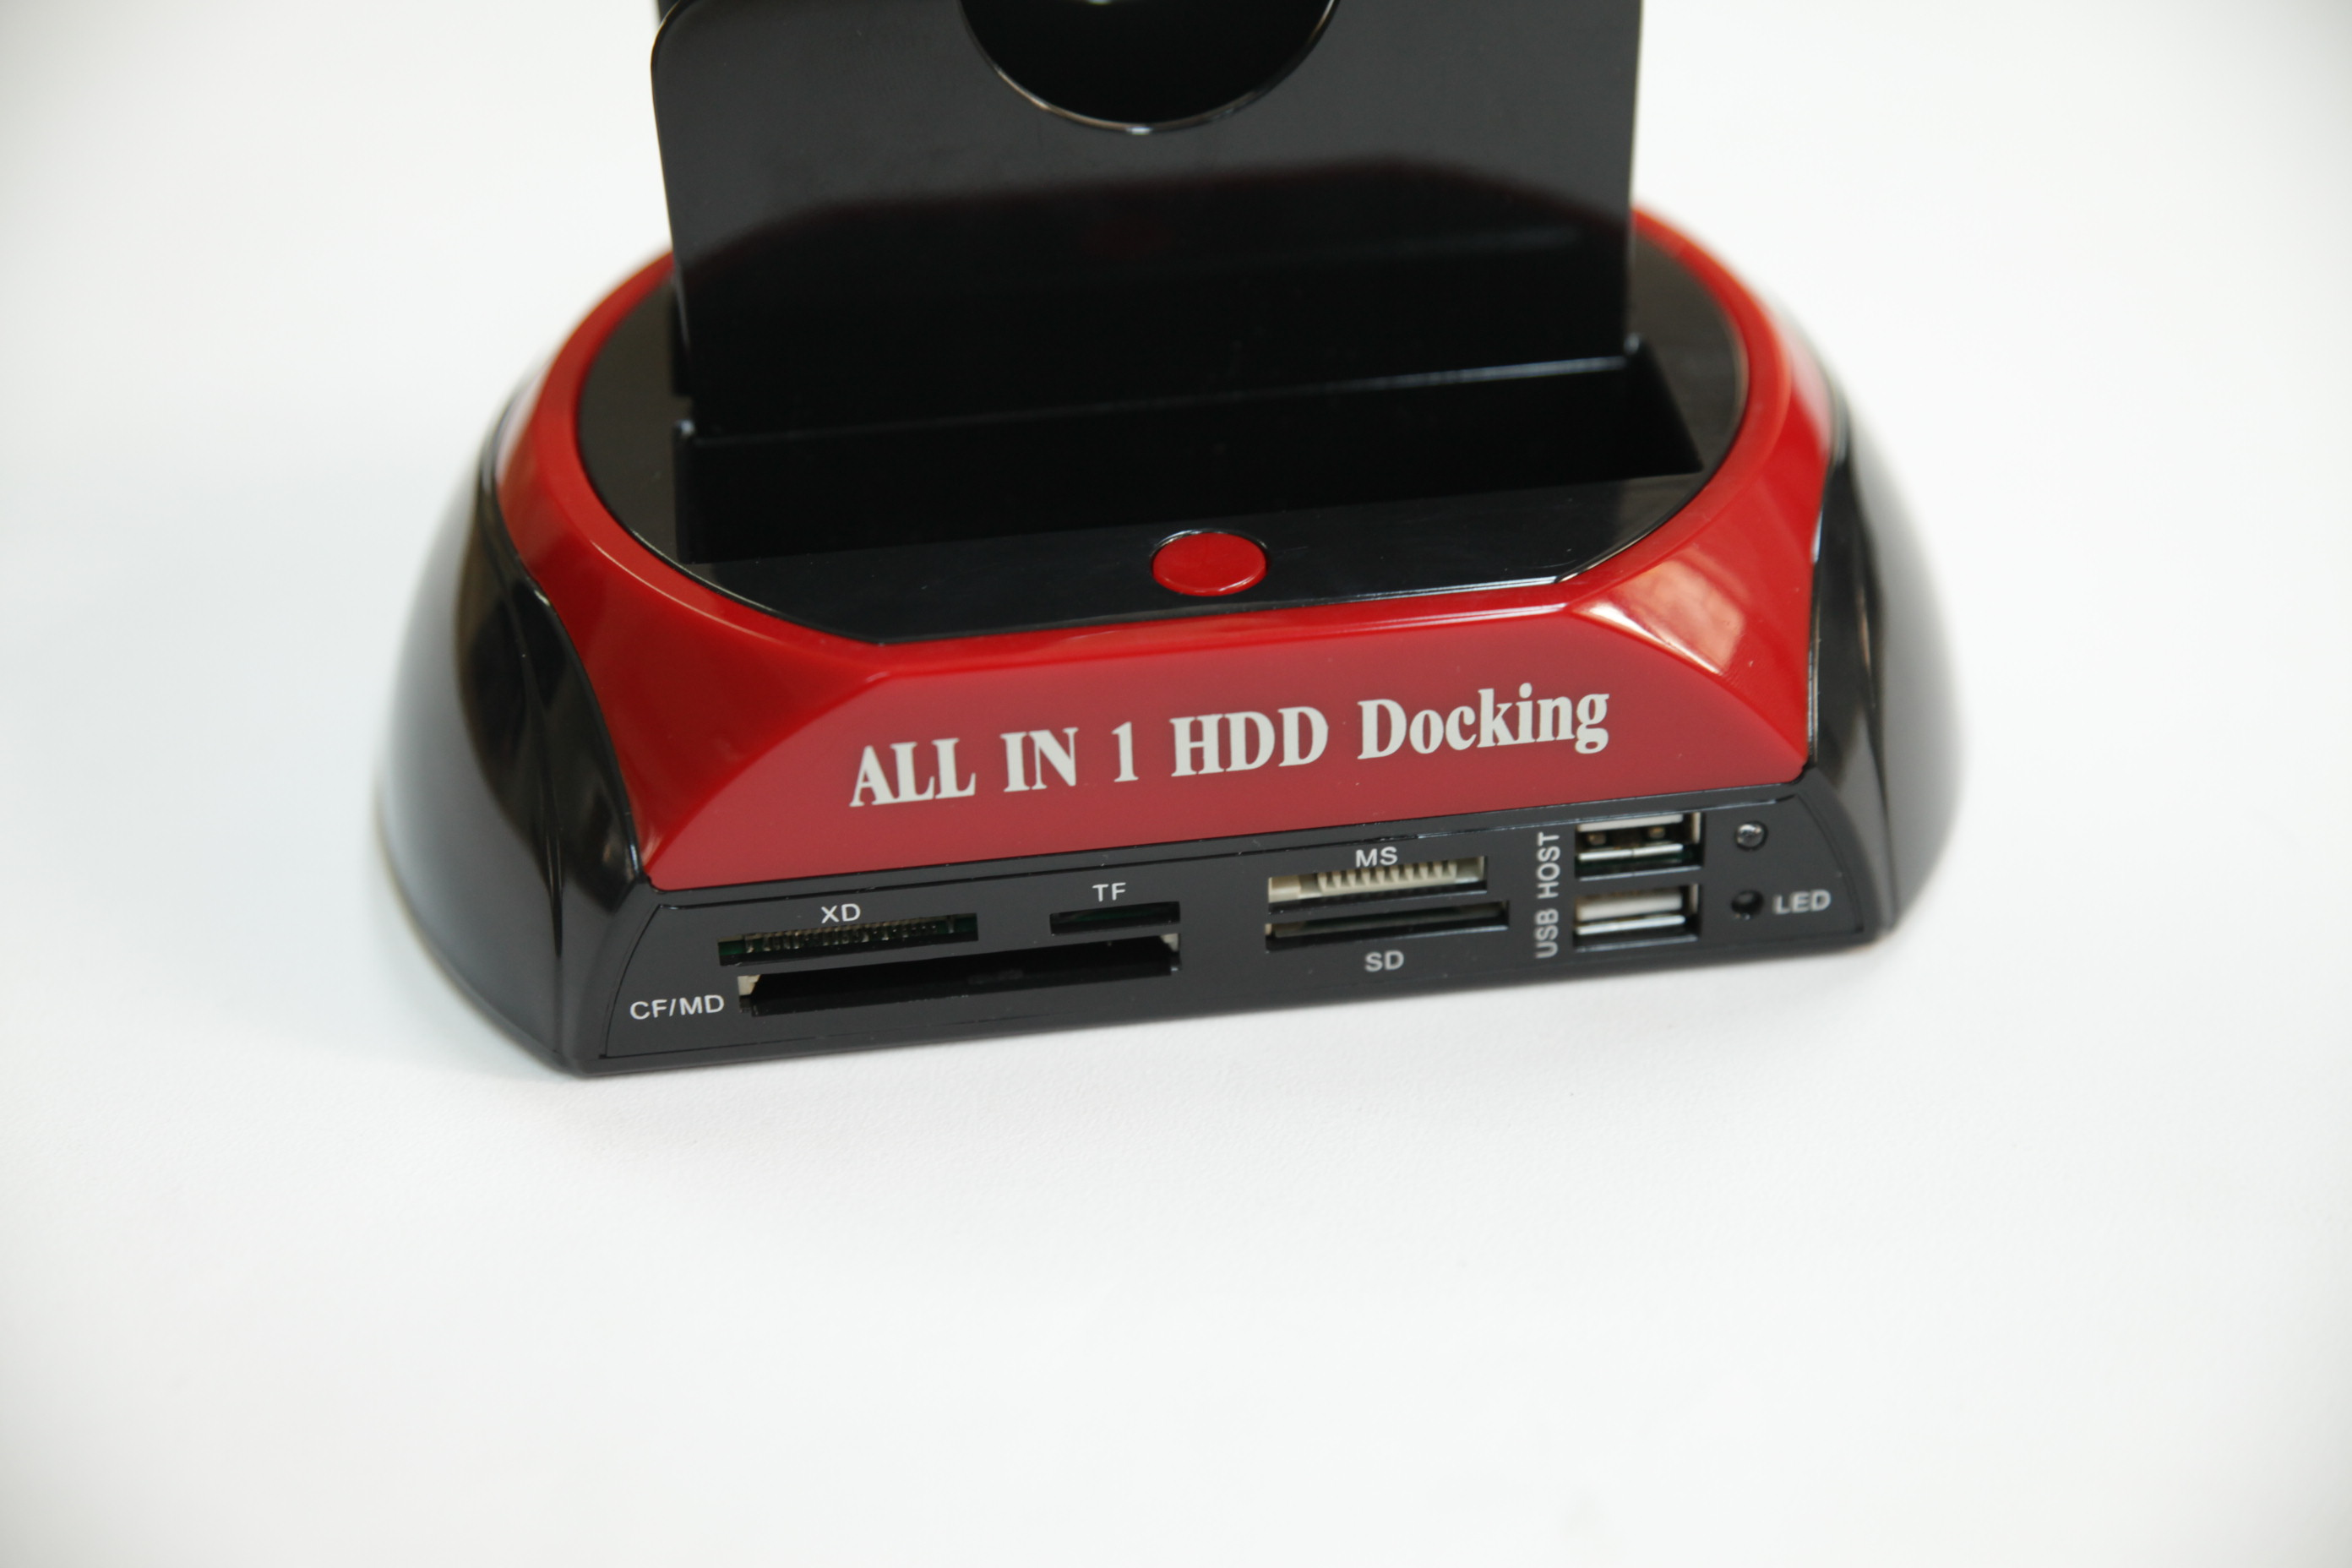 All In 1 Hdd Docking Driver Windows 10 Download